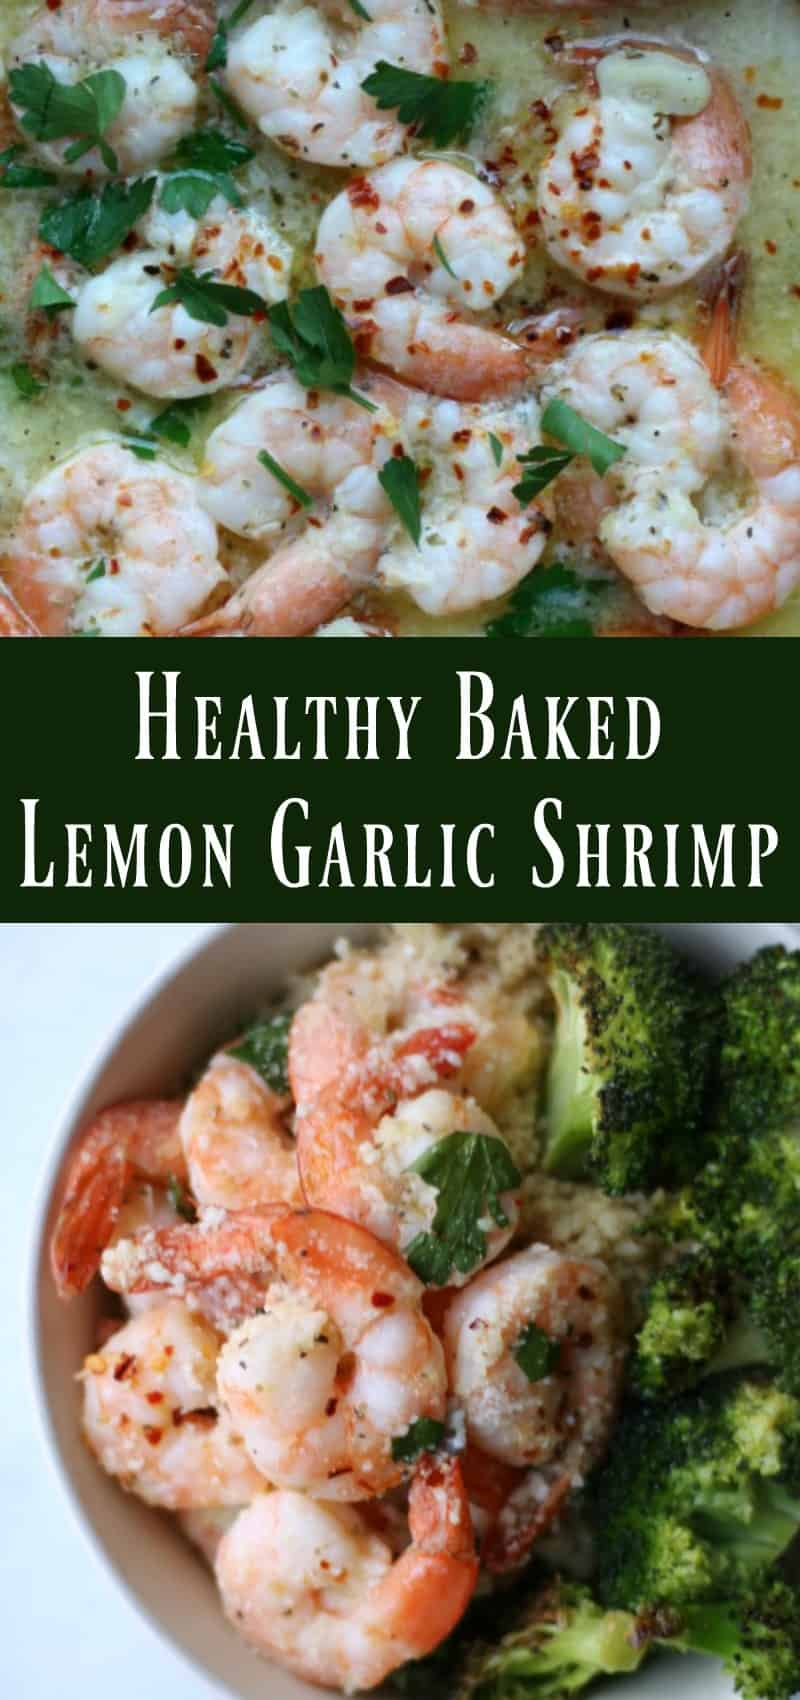 Healthy Baked Lemon Garlic Shrimp